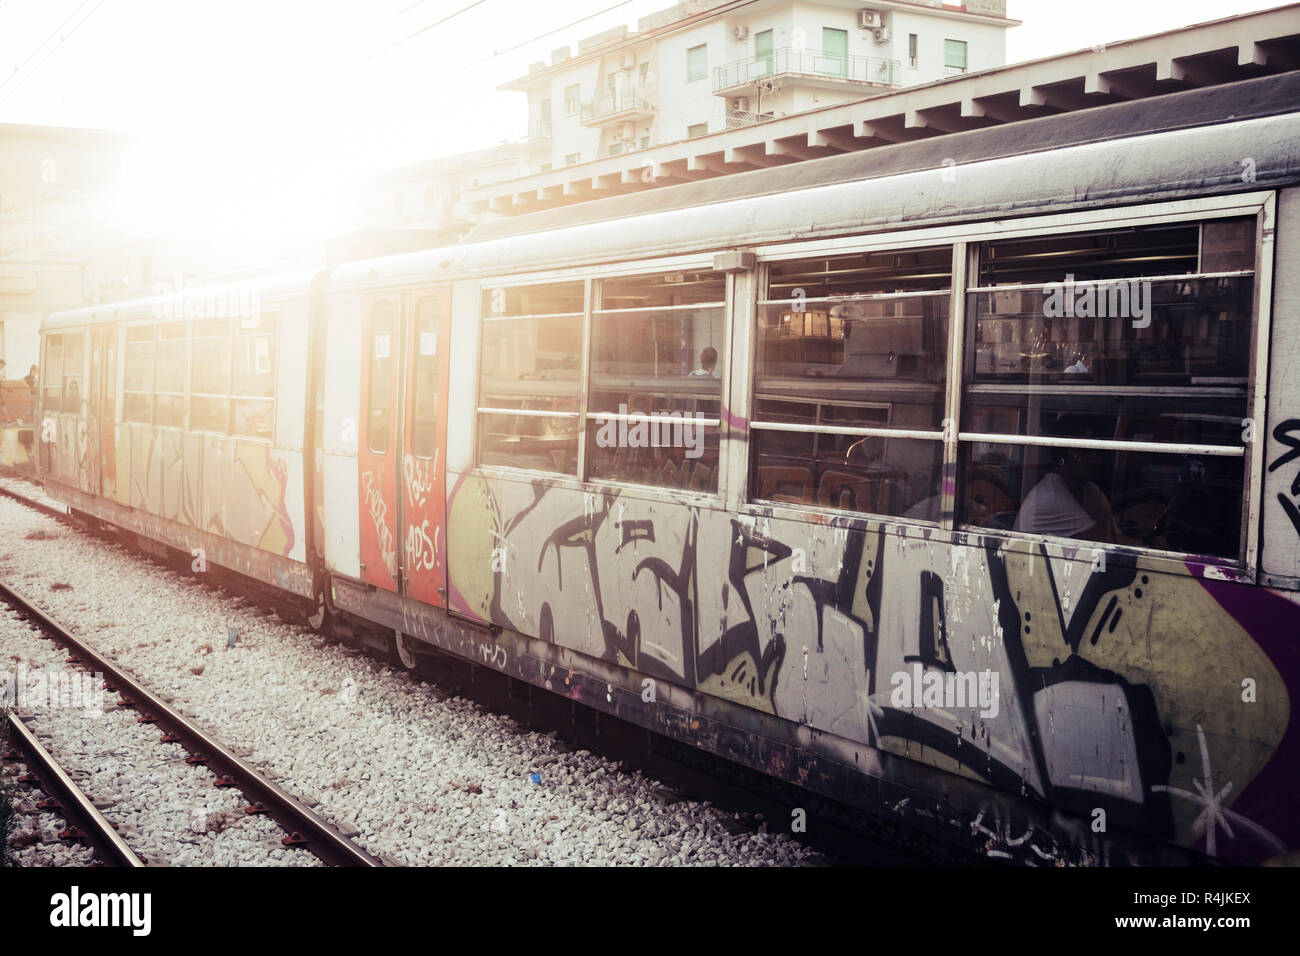 A train with closed doors waiting for passengers at the railway station. Street art and urban culture painted on the tube, Sunlight in background Stock Photo